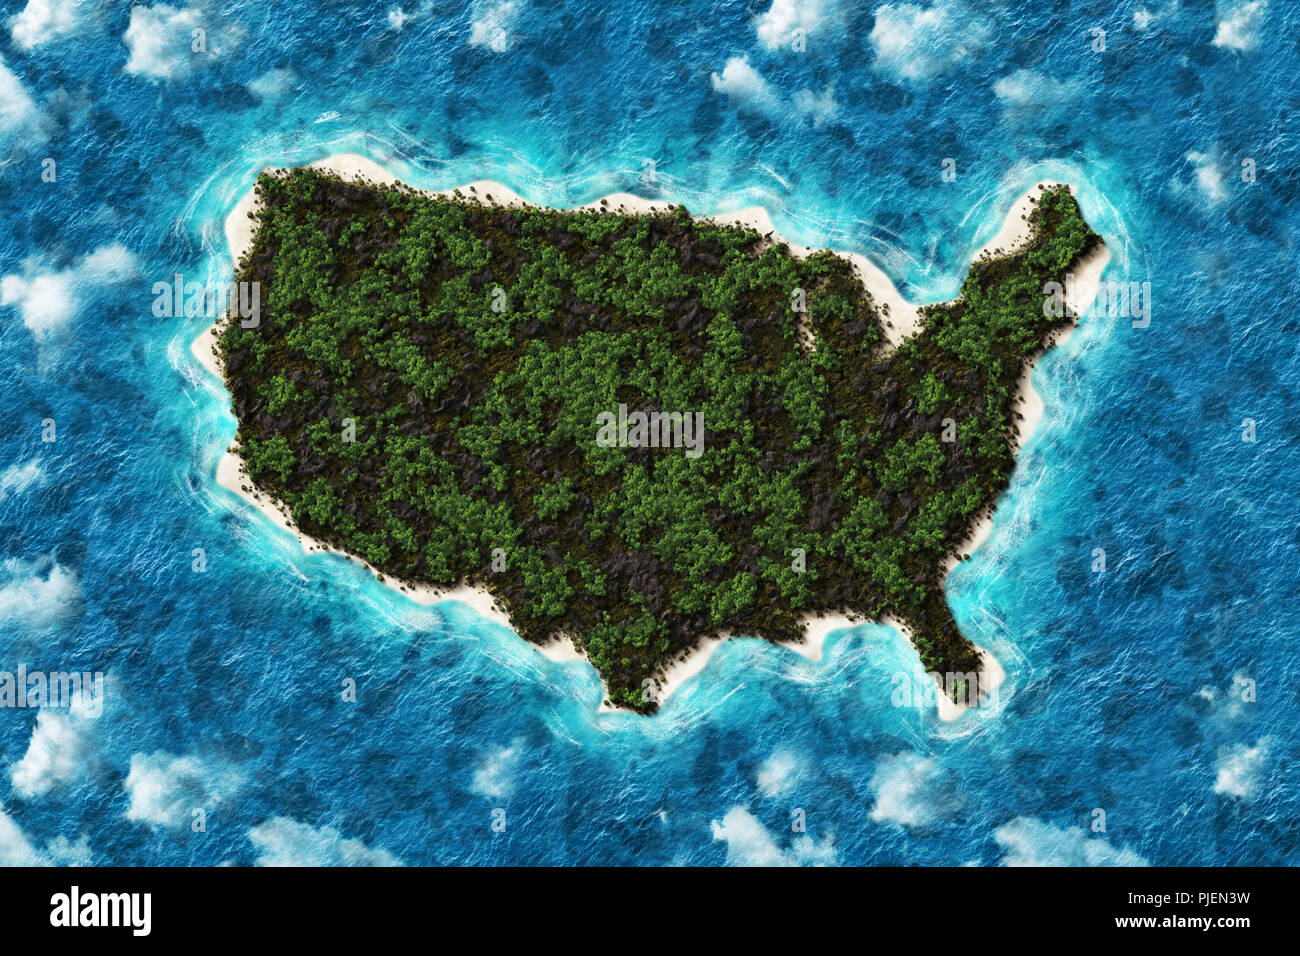 View Map Of United States.Mountains And Forest Map Of United States America In Aerial View